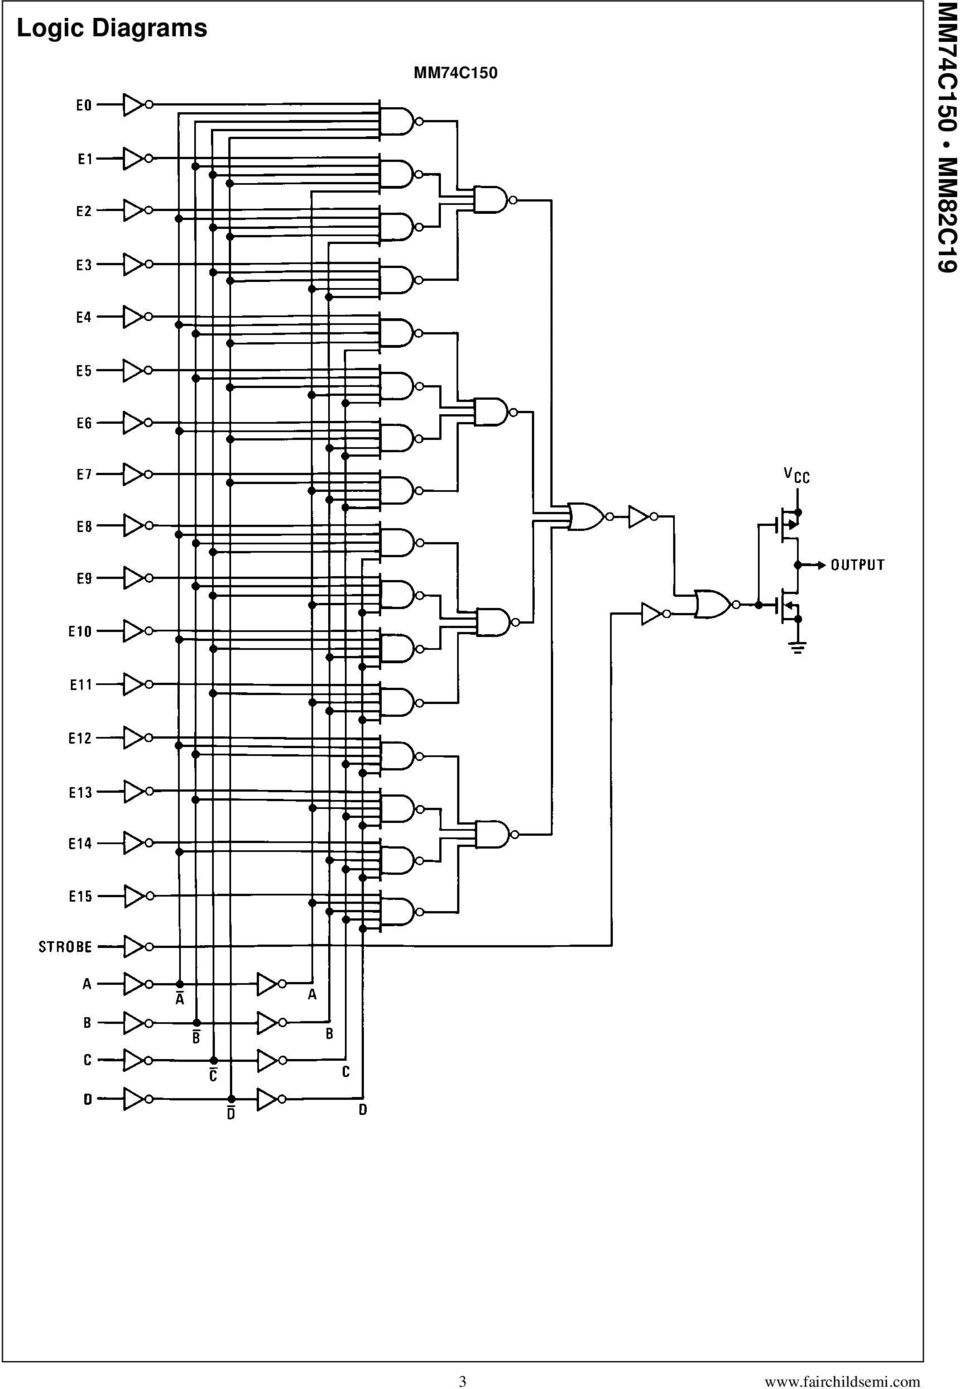 Mm74c150 Mm82c19 16 Line To 1 Multiplexer 3 State General Block Diagram Of 4 Logic Diagrams Continued